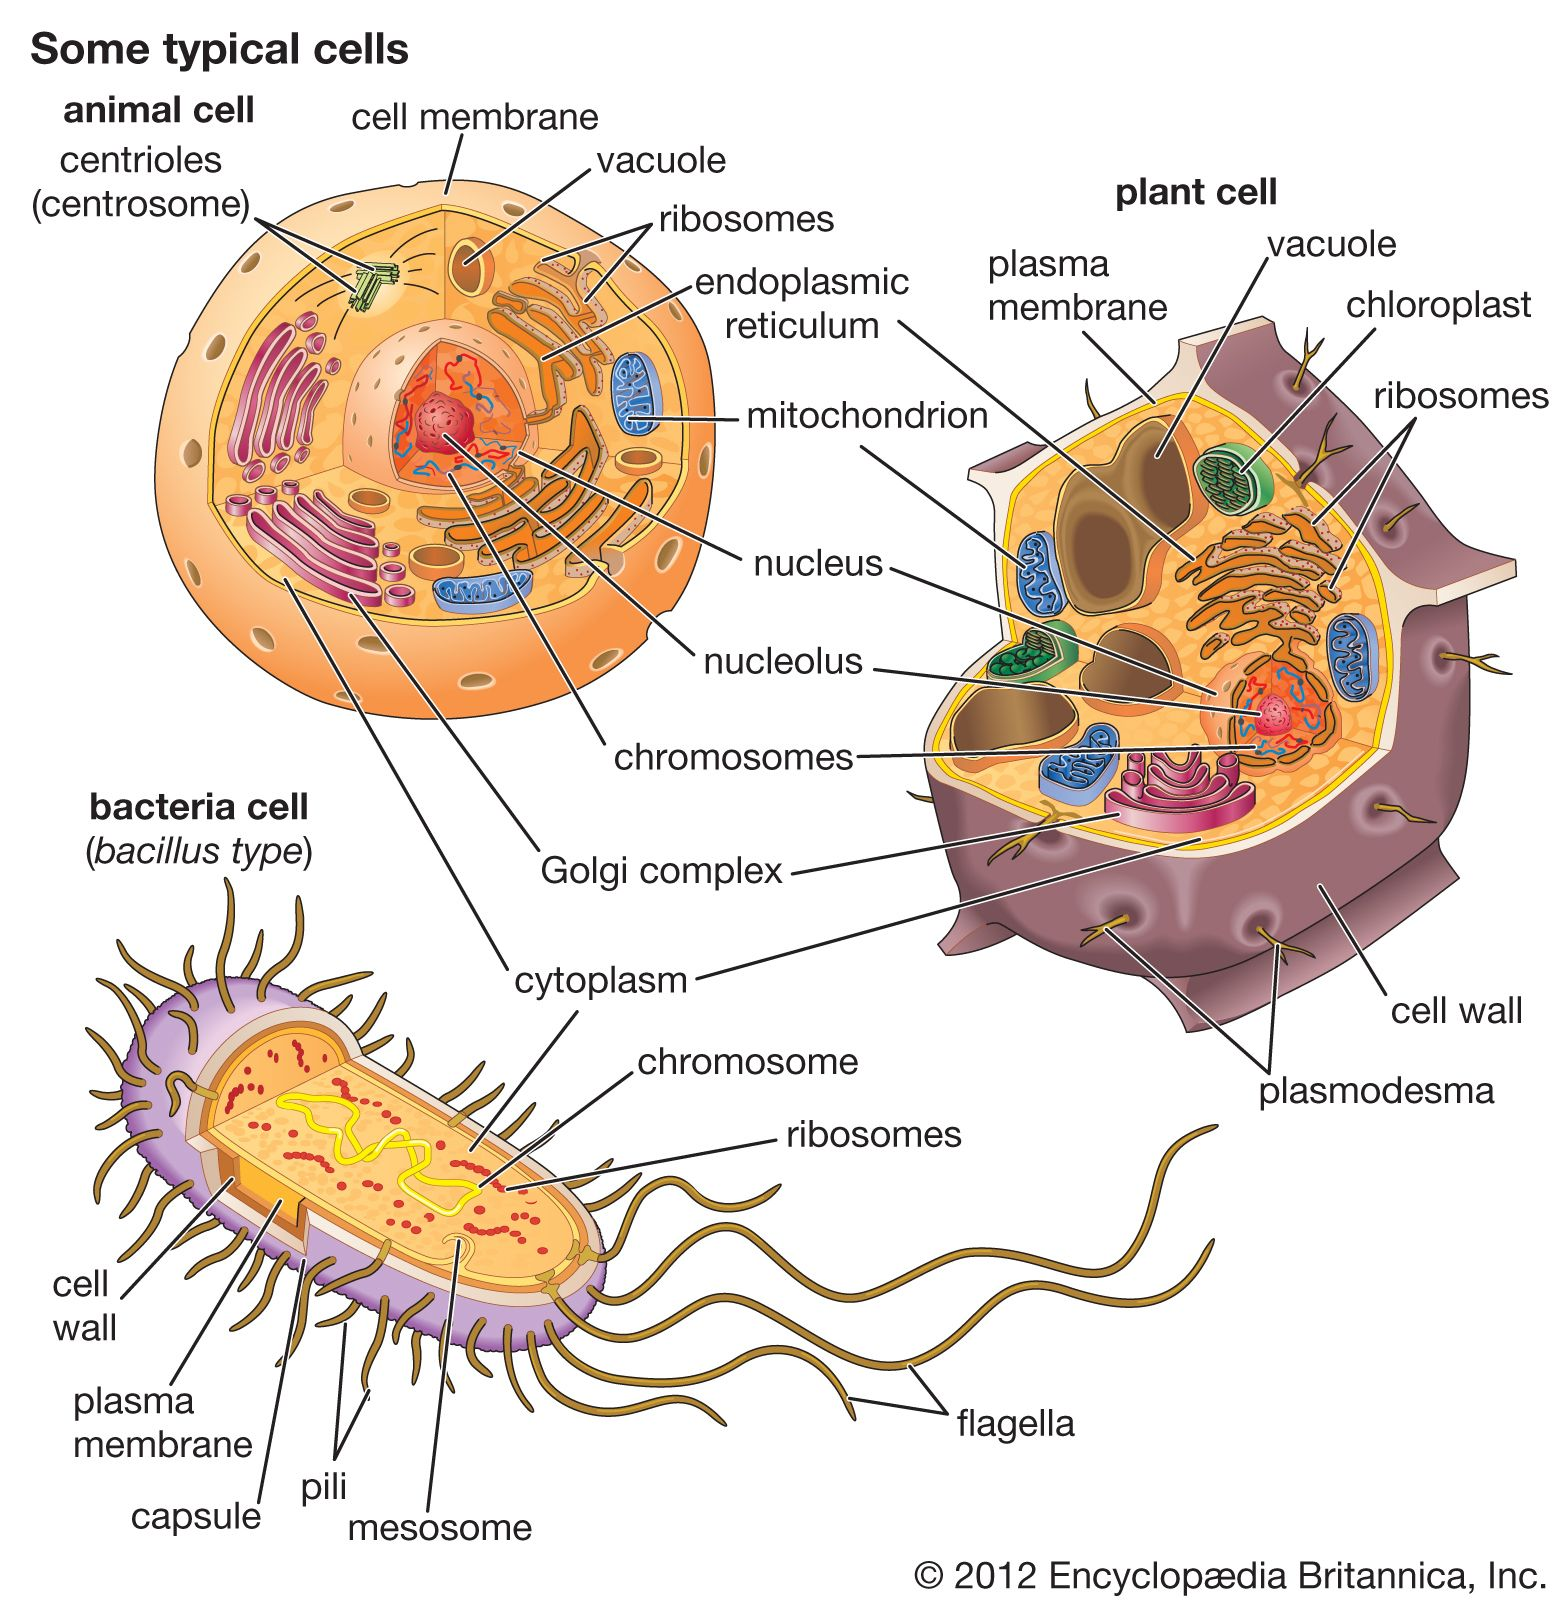 Cell My Computer Pinterest Plant Biology And Structure Animal Diagram Worksheet Also Cells Contain Membrane Bound Organelles Including A Distinct Nucleus In Contrast Bacterial Do Not